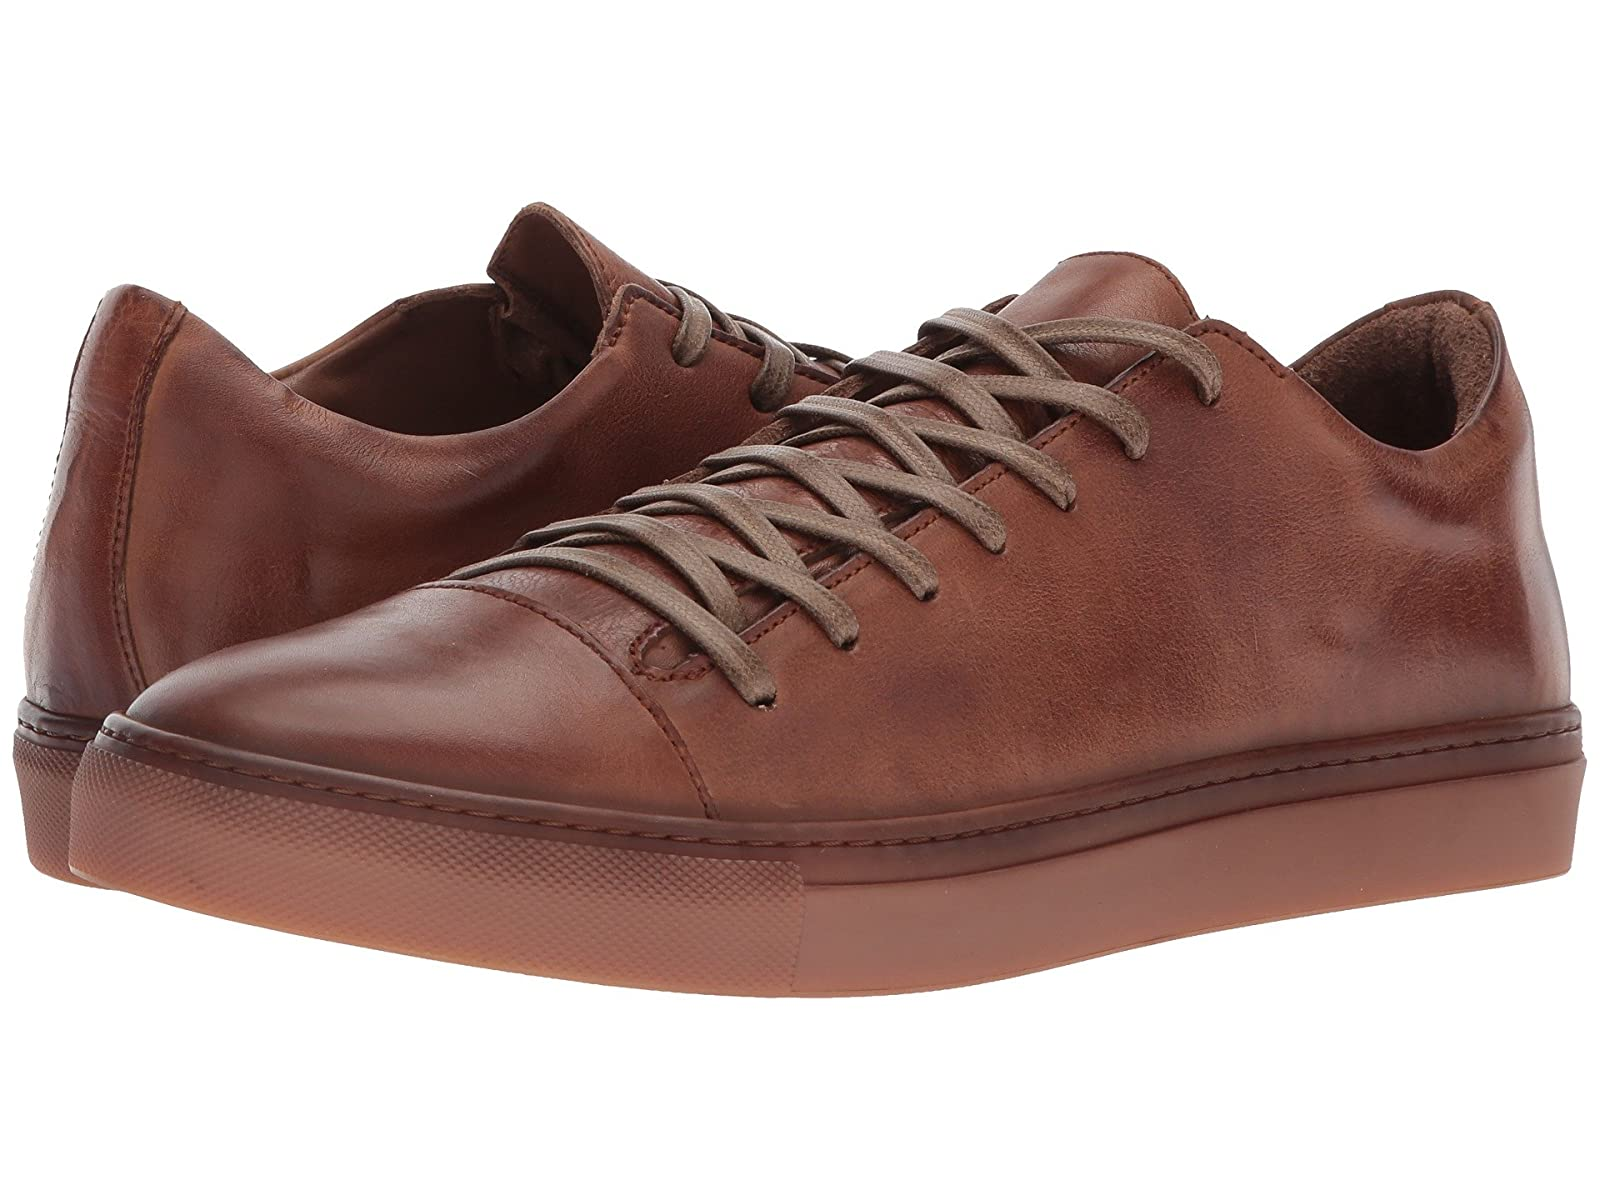 John Varvatos Collection Reed Low Top SneakerCheap and distinctive eye-catching shoes